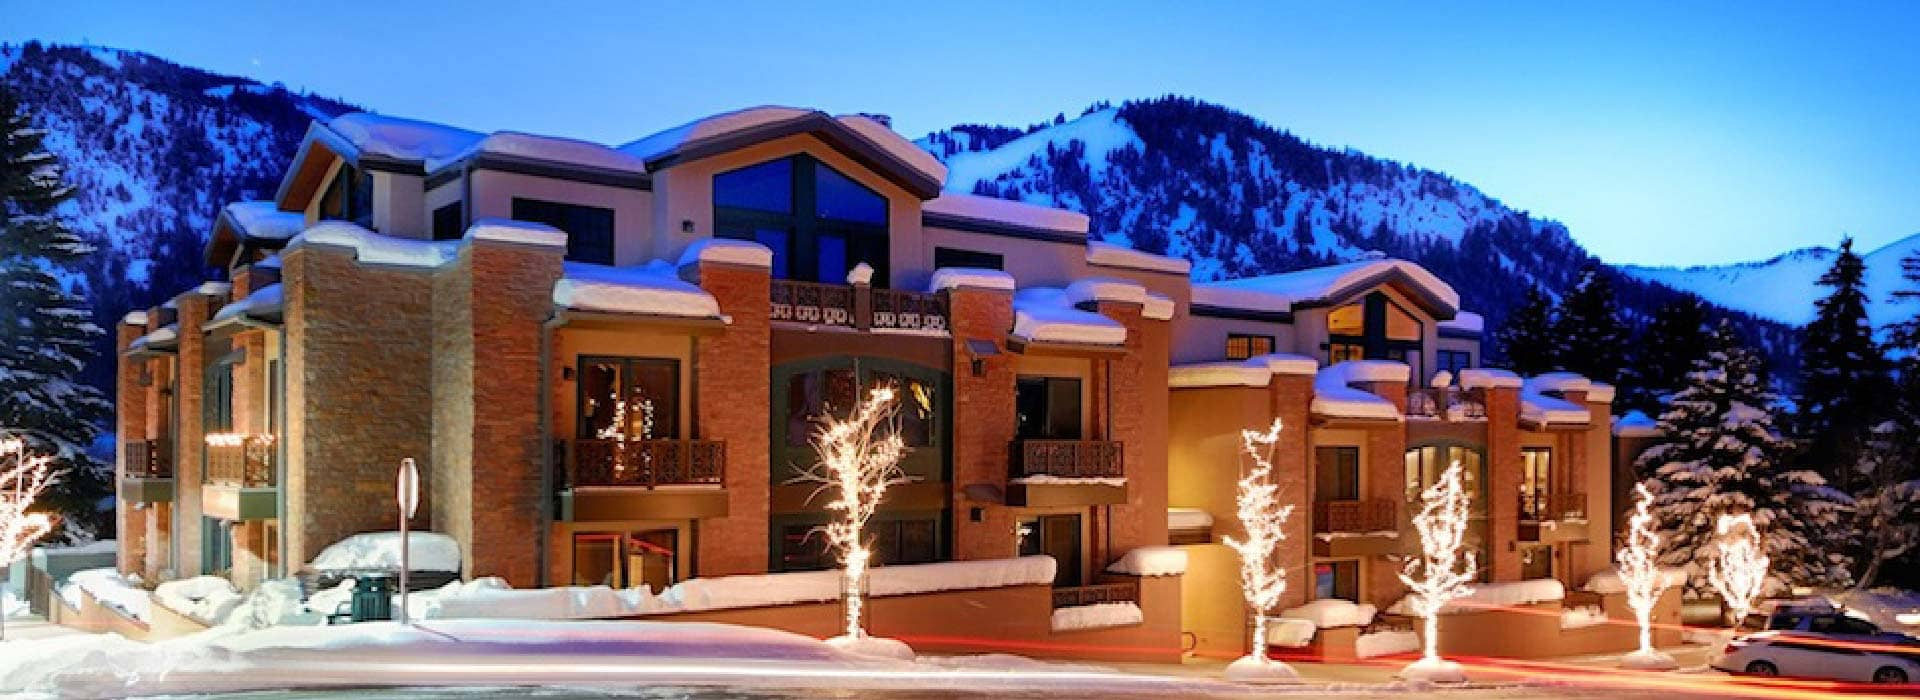 Sun Valley Vacation Home U0026 Condo Rentals | Sun Valley Luxury Lodgings